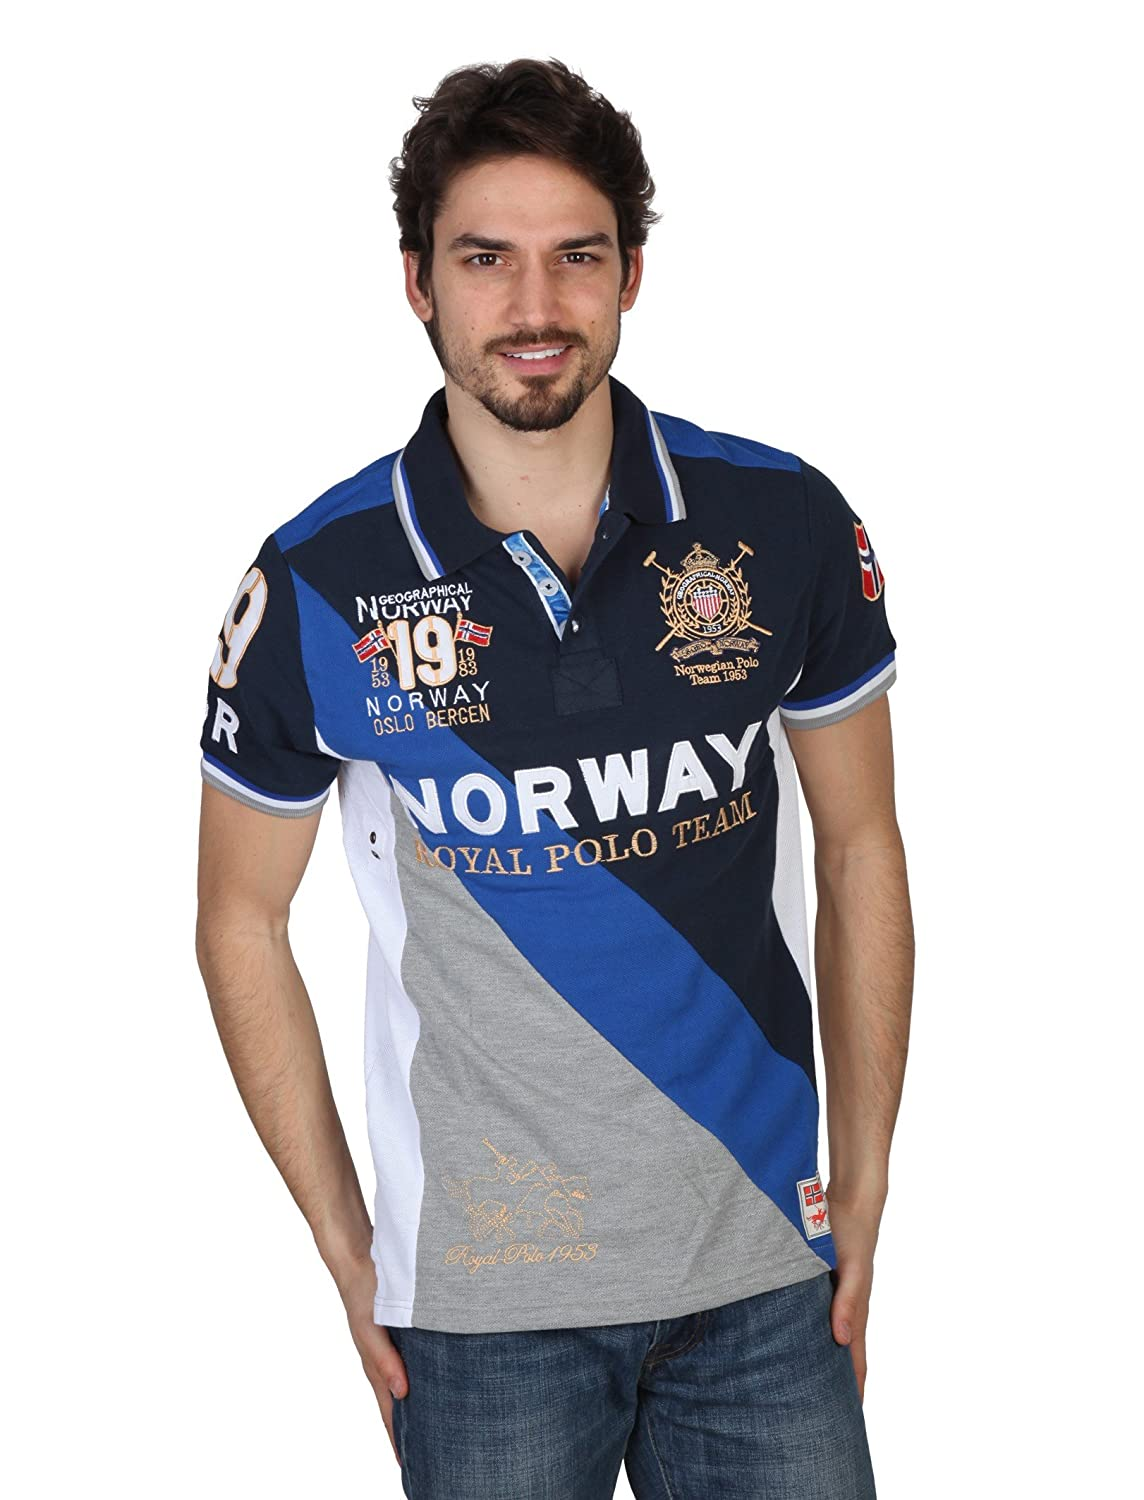 GEOGRAPHICAL NORWAY Polo hombre Korway azul - hombre - XXL: Amazon ...